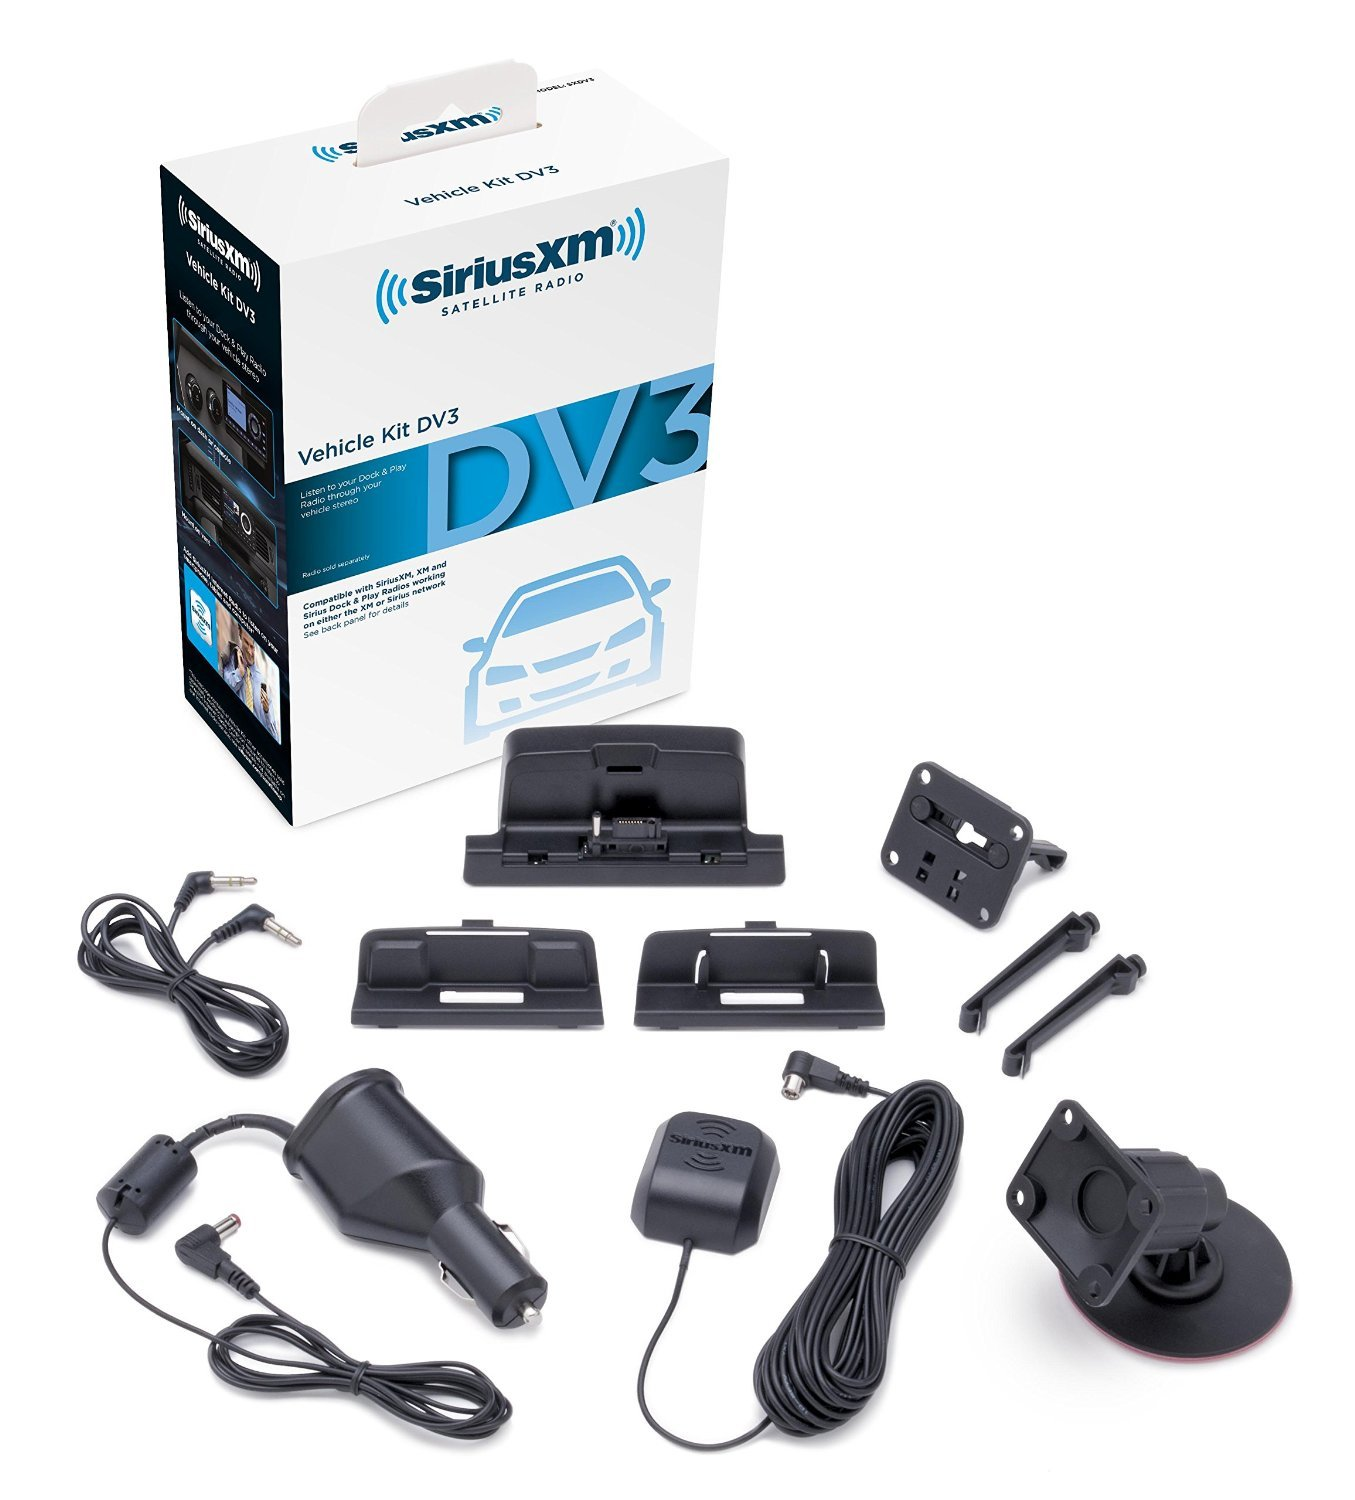 Siriusxm Sxdv3 Satellite Radio Vehicle Mounting Kit With Car Antenna Wiring For Home Use Dock And Charging Cable Black Sirius Xm Cell Phones Accessories